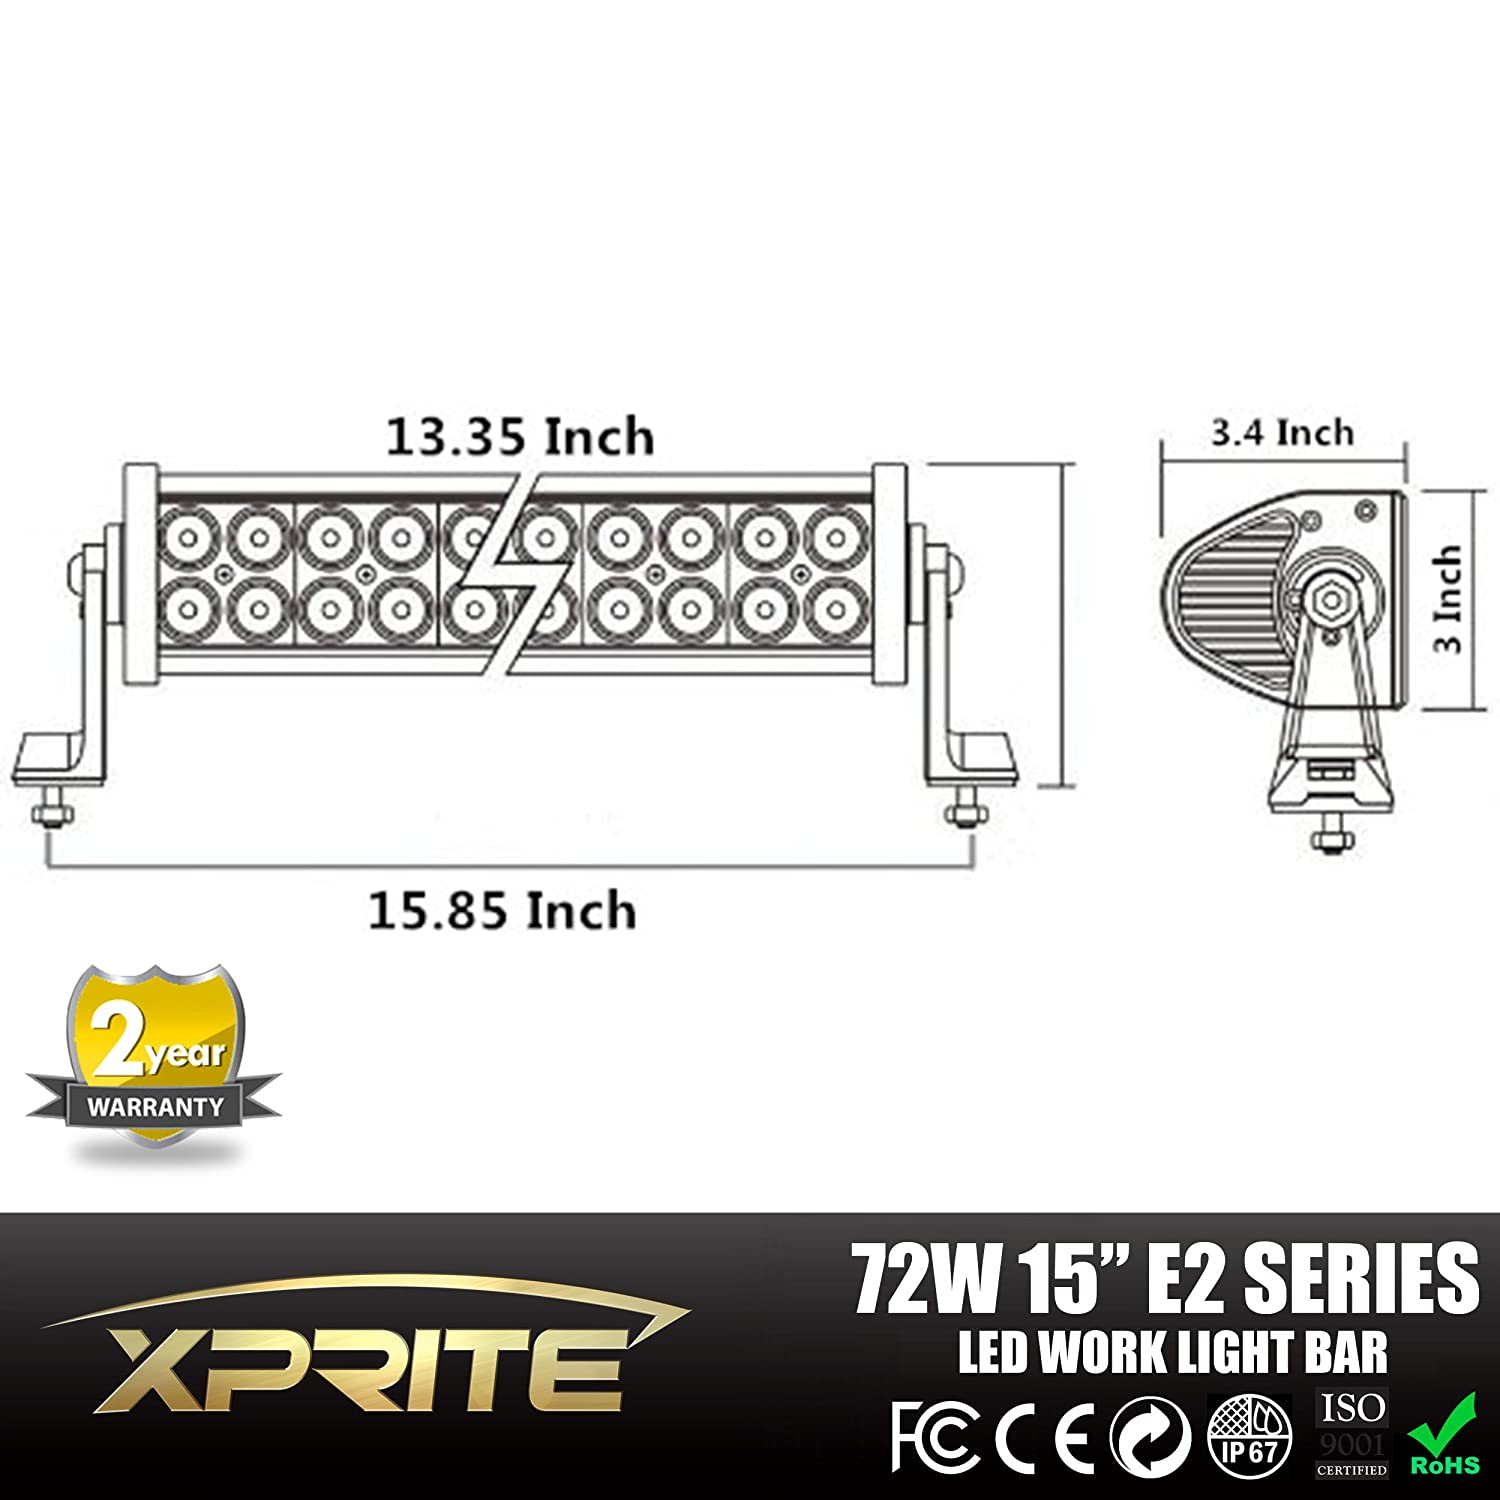 Tuff Stuff Performance 10 Led 12 Off Road Light Bar Flood Wiring Diagram Spot Combo Beam 3w 72w 4500 Beware All Other Resellers Are Selling Lower Grade Lights